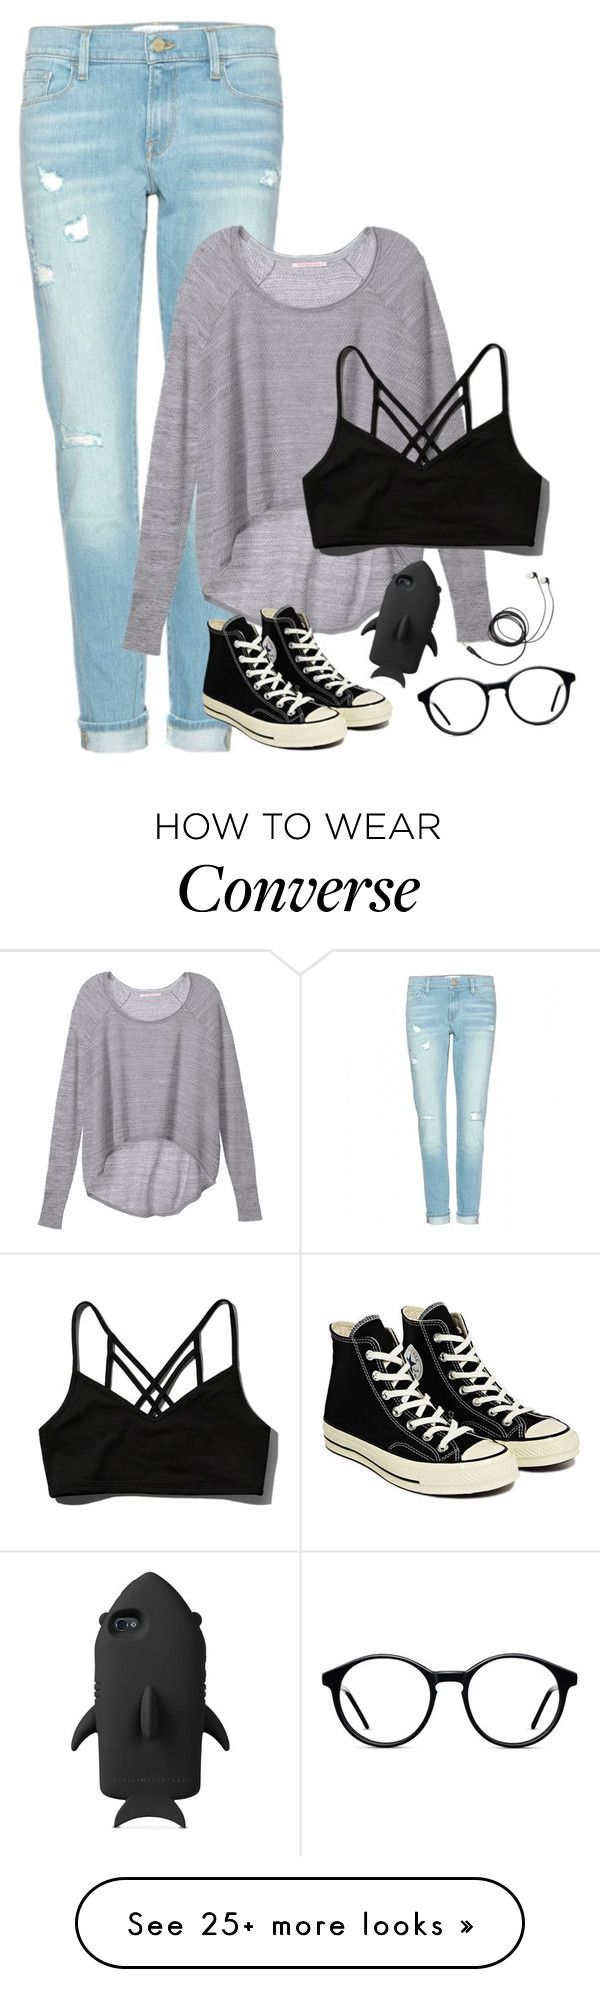 (  by unicornforeva on Polyvore featuring Frame Denim, Victoria's Secret, Abercrombie & Fitch, Converse and STELLA McCARTNEY is part of Outfits -